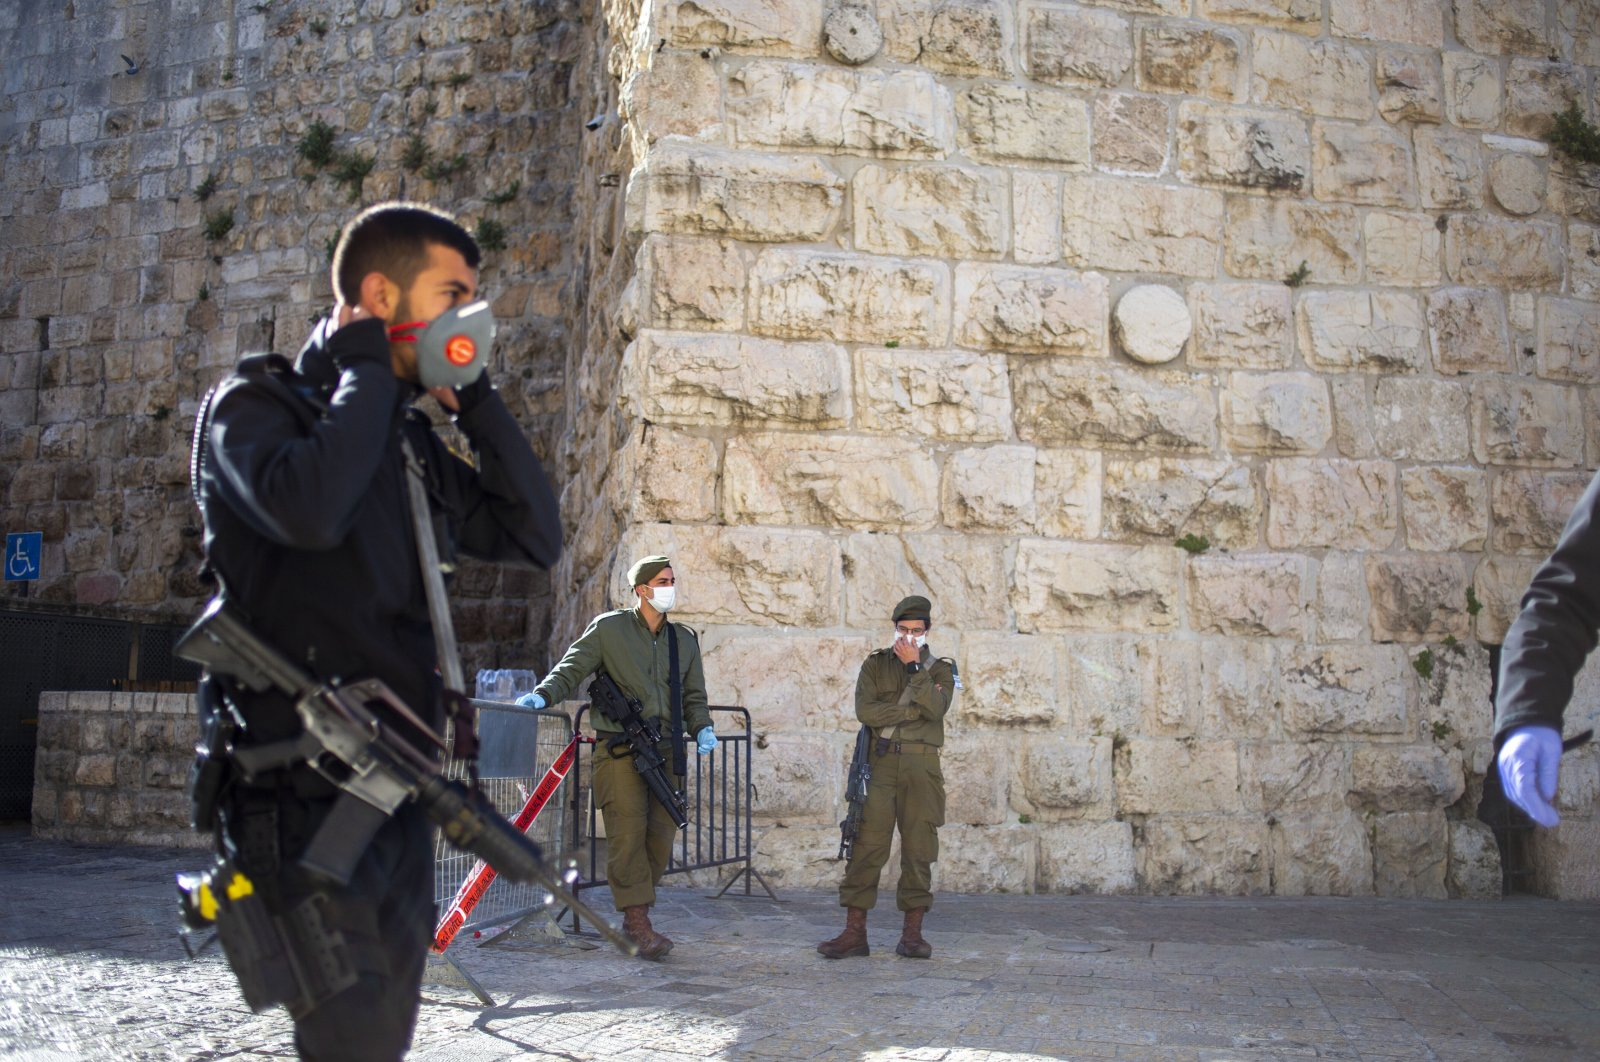 An Israeli police officer and Israeli soldiers block Jaffa gate during a lockdown following government measures in Jerusalem's old city, April 9, 2020. (AP Photo)